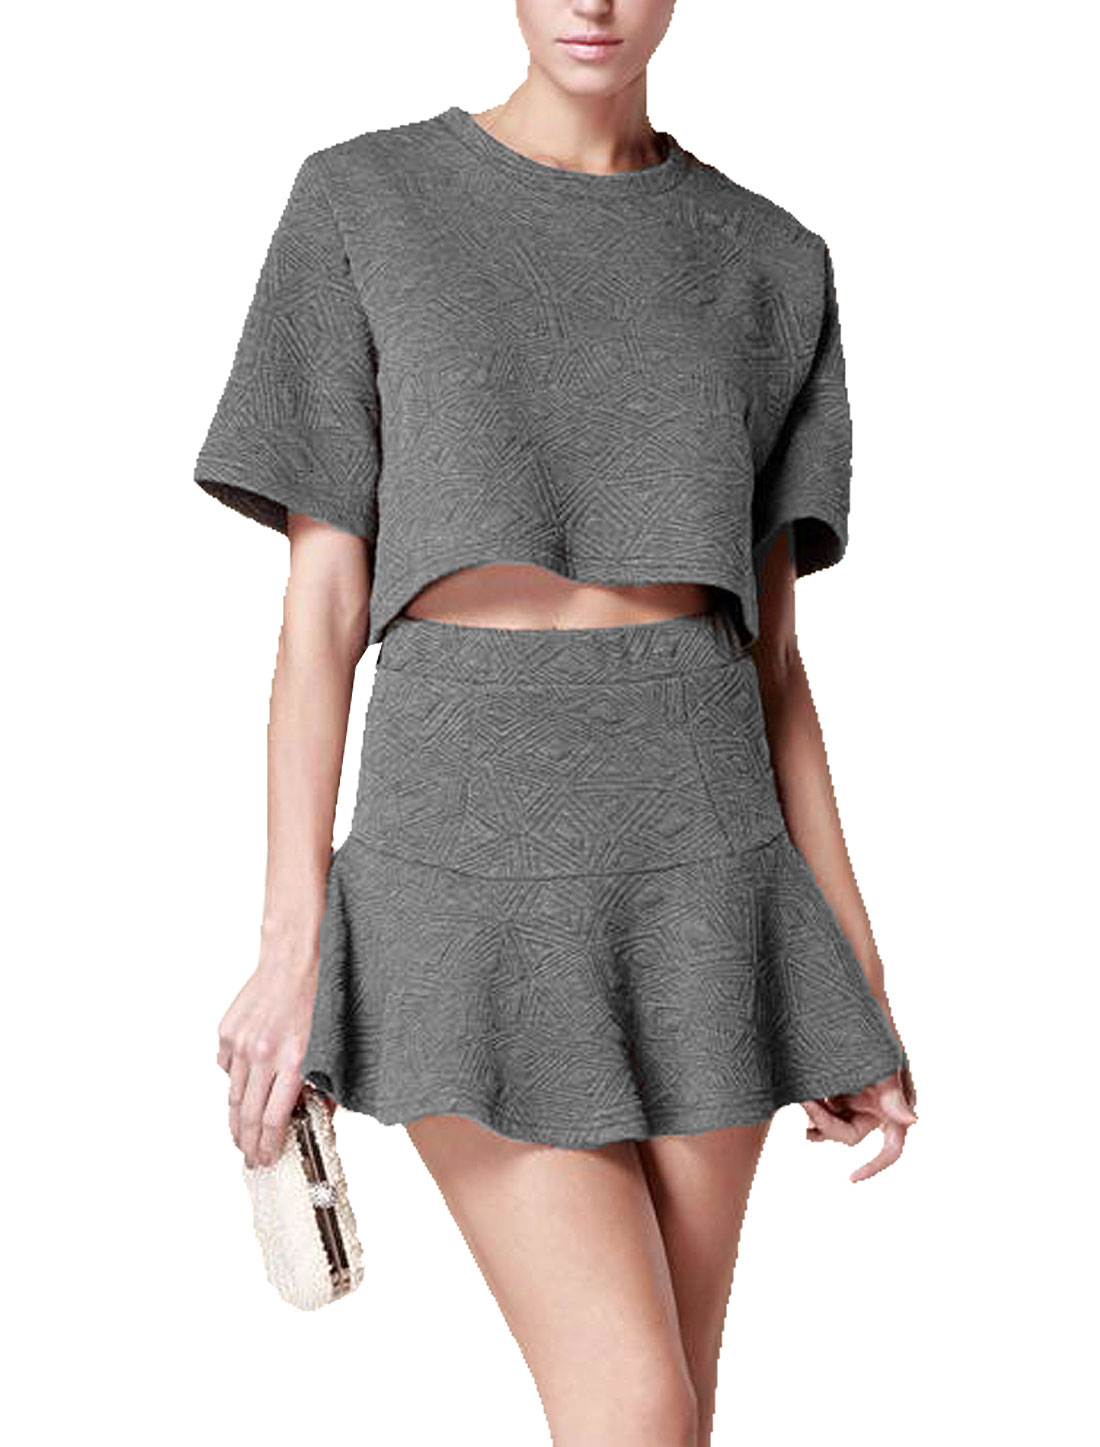 Round Neck Bell Sleeve Cropped Top + Mini A-Line Skirt Gray S for Women